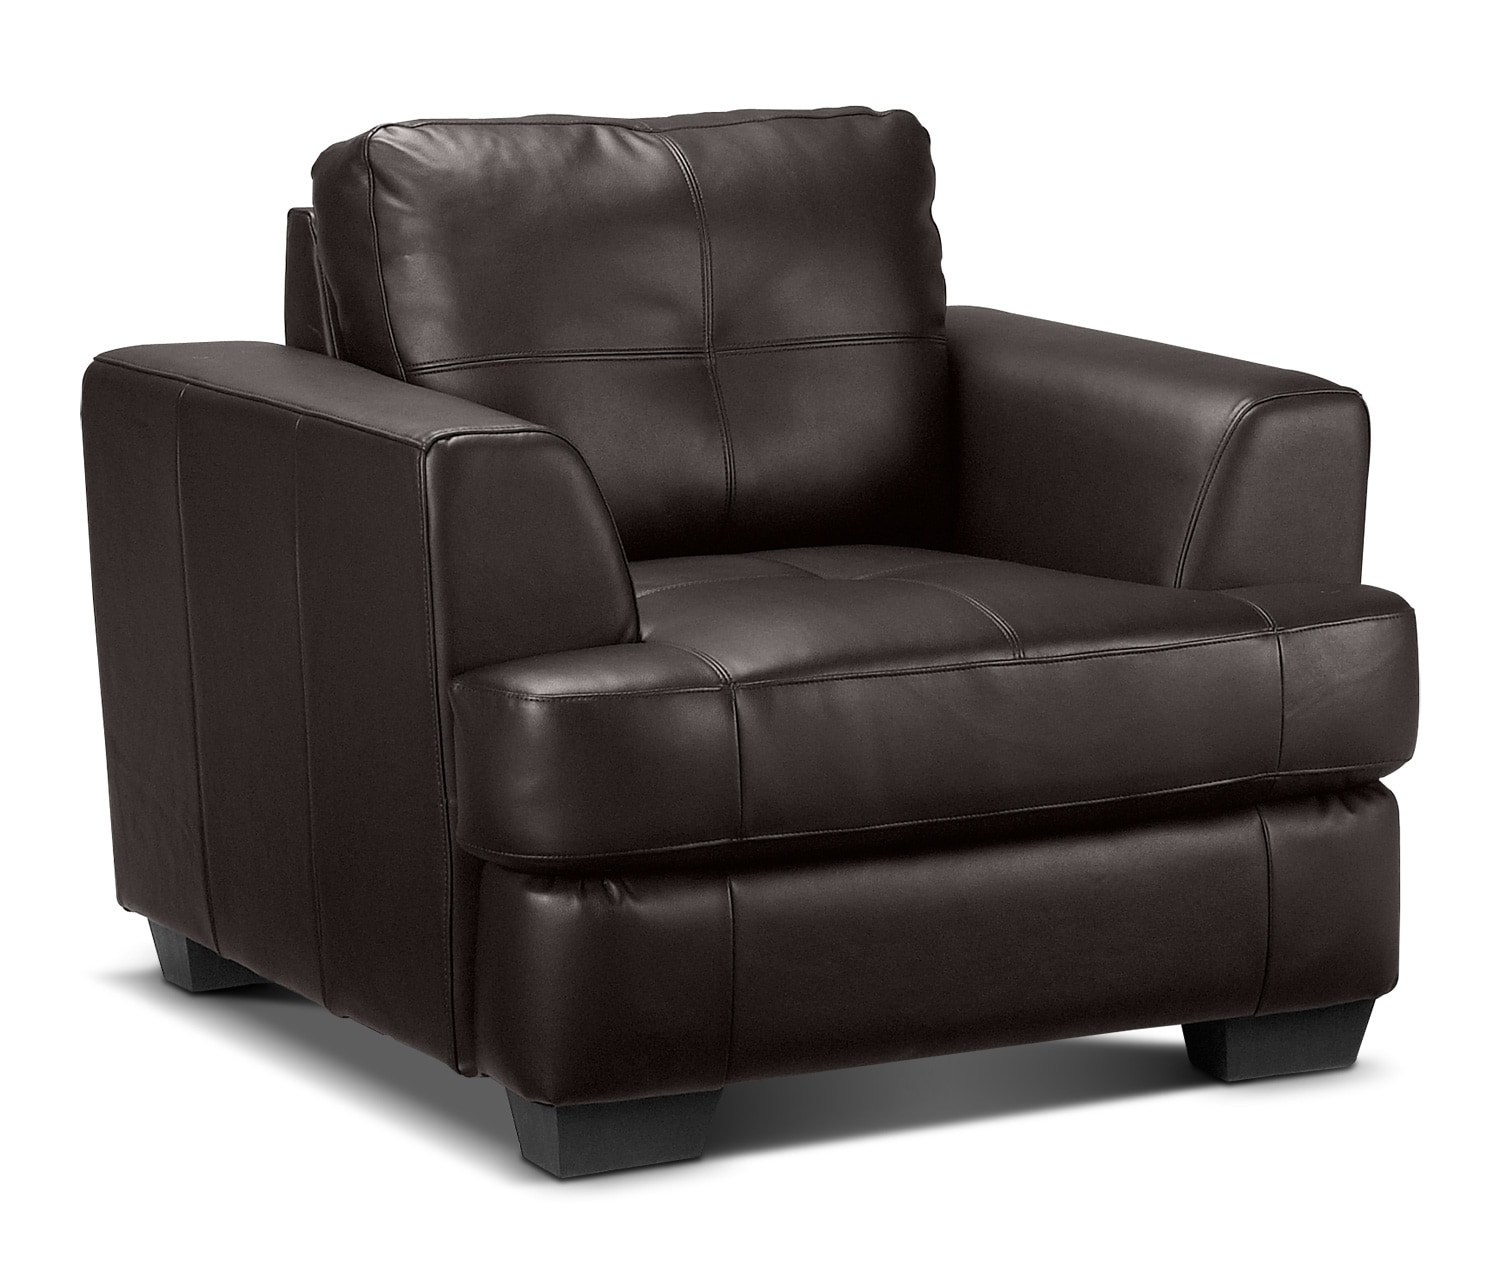 Living Room Furniture - Caitlyn Chair - Dark Chocolate